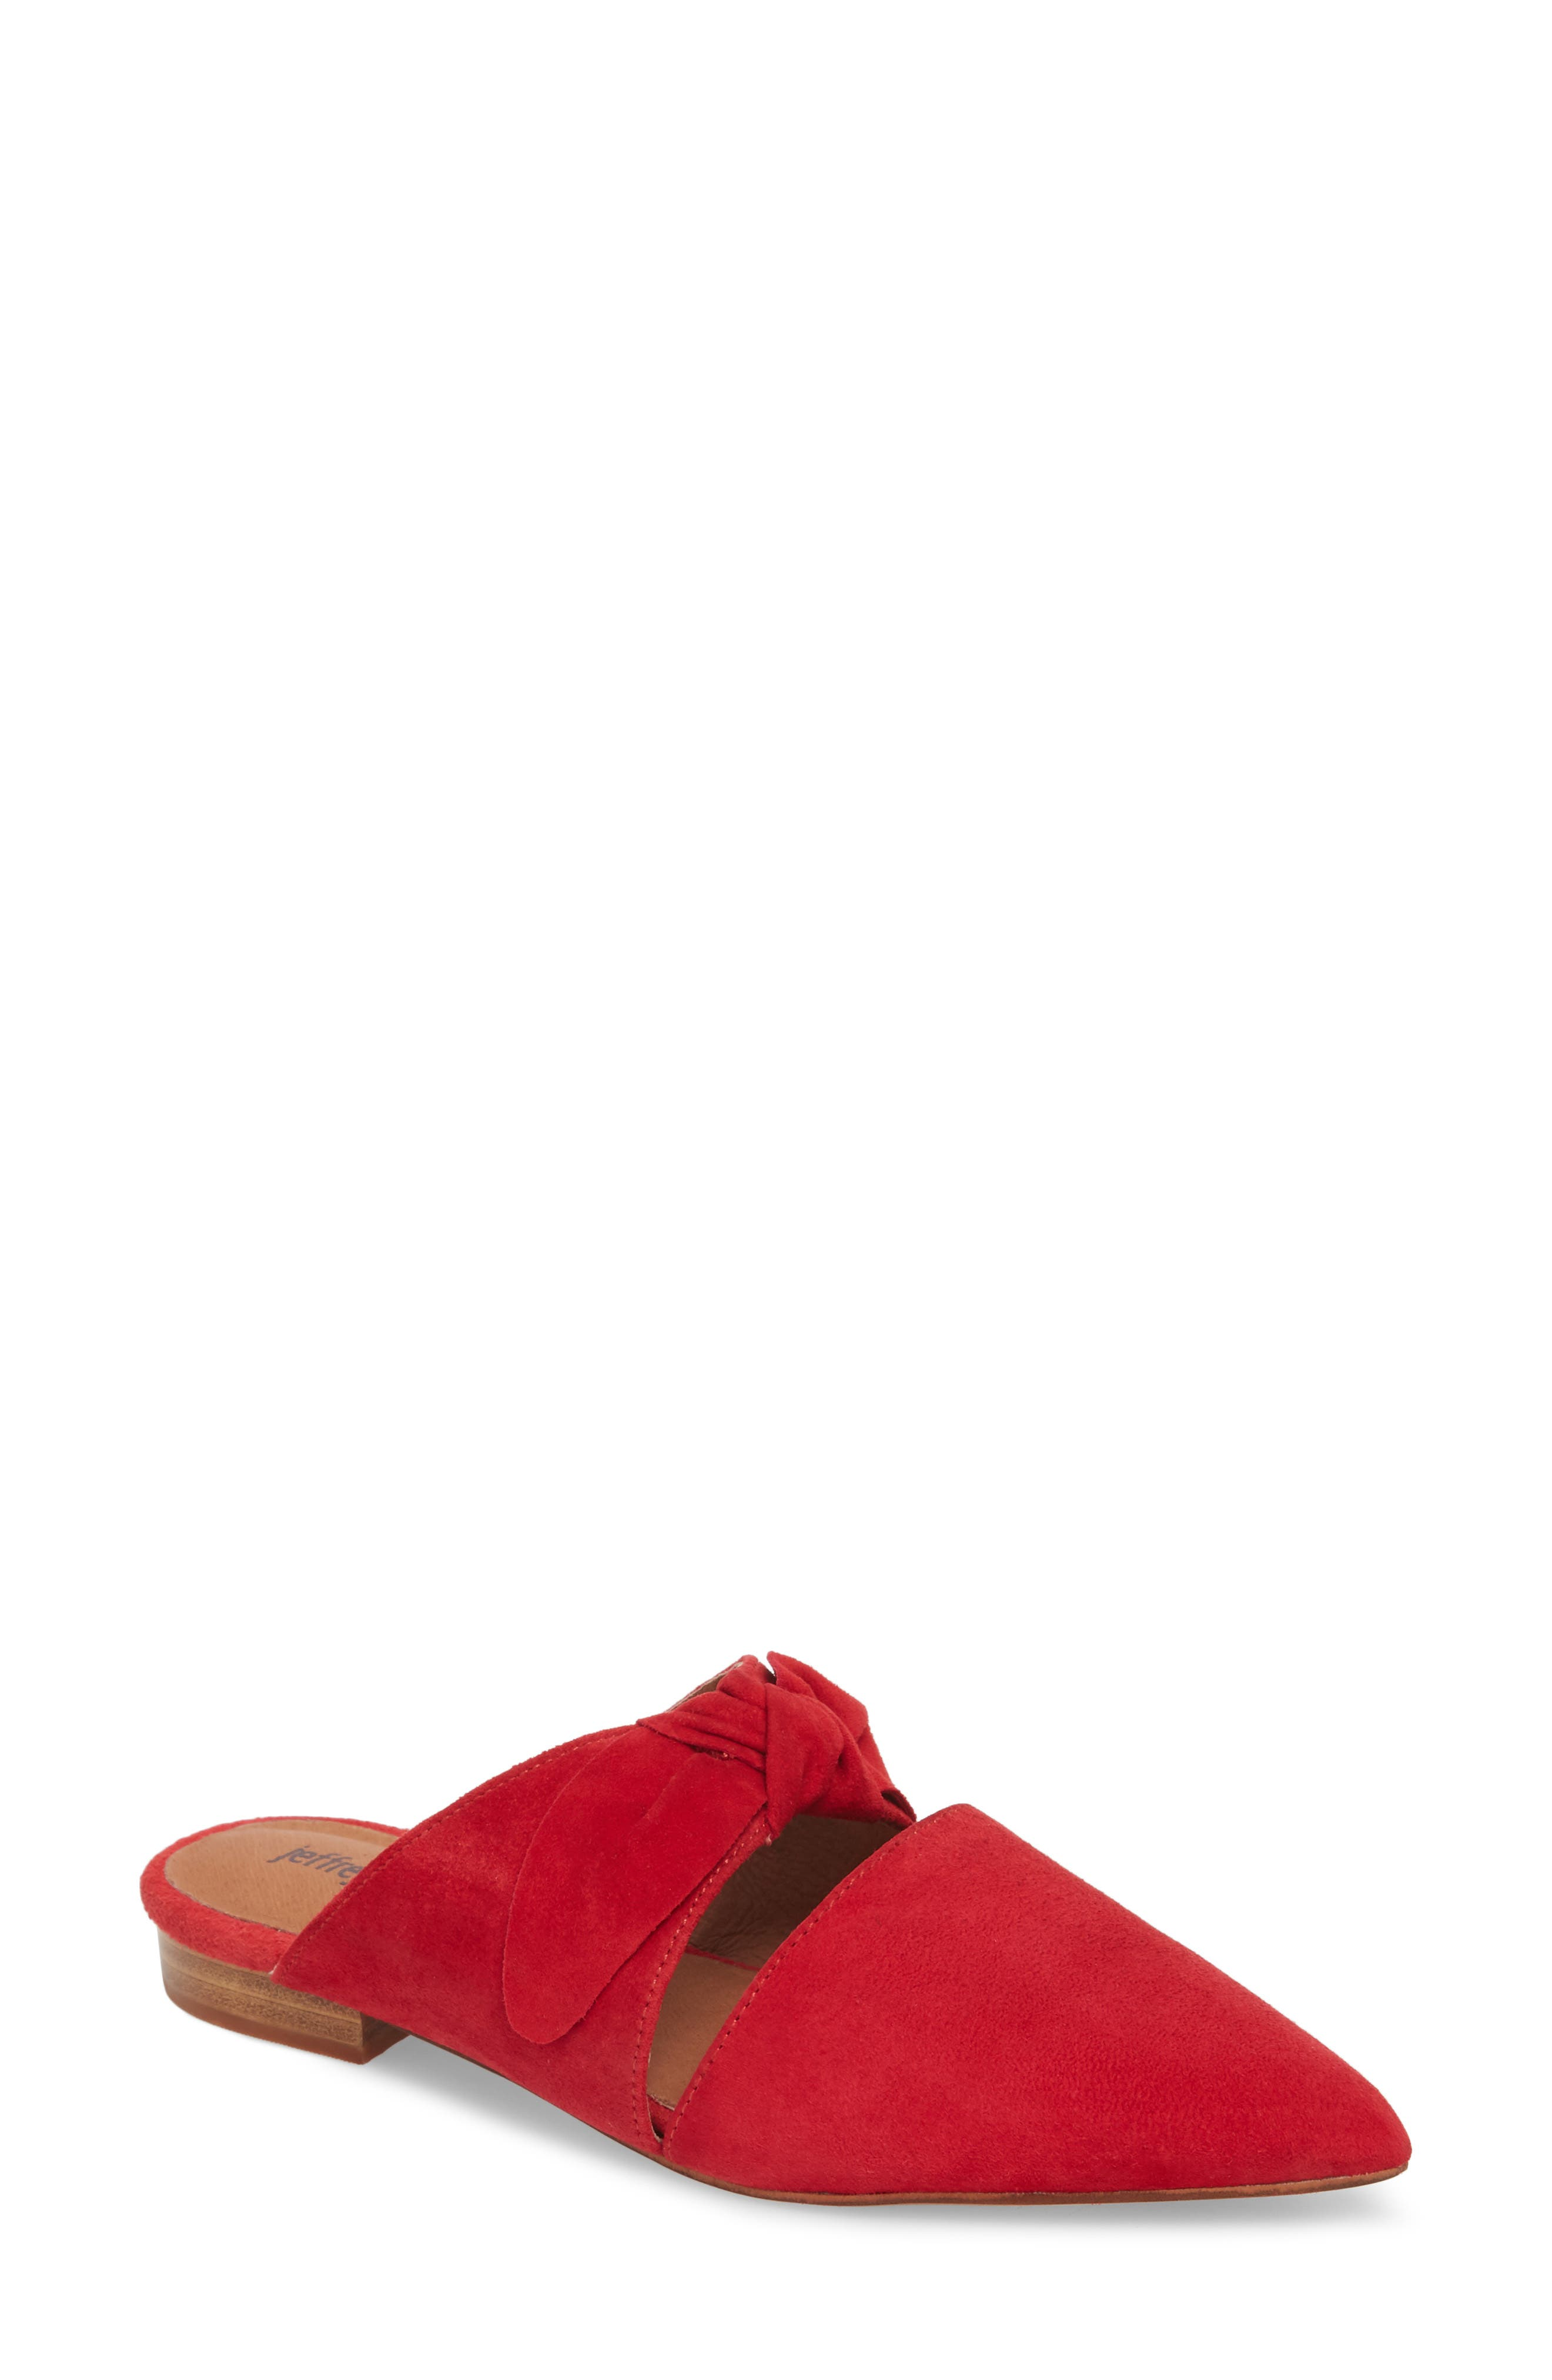 Alternate Image 1 Selected - Jeffrey Campbell Charlin Bow Mule